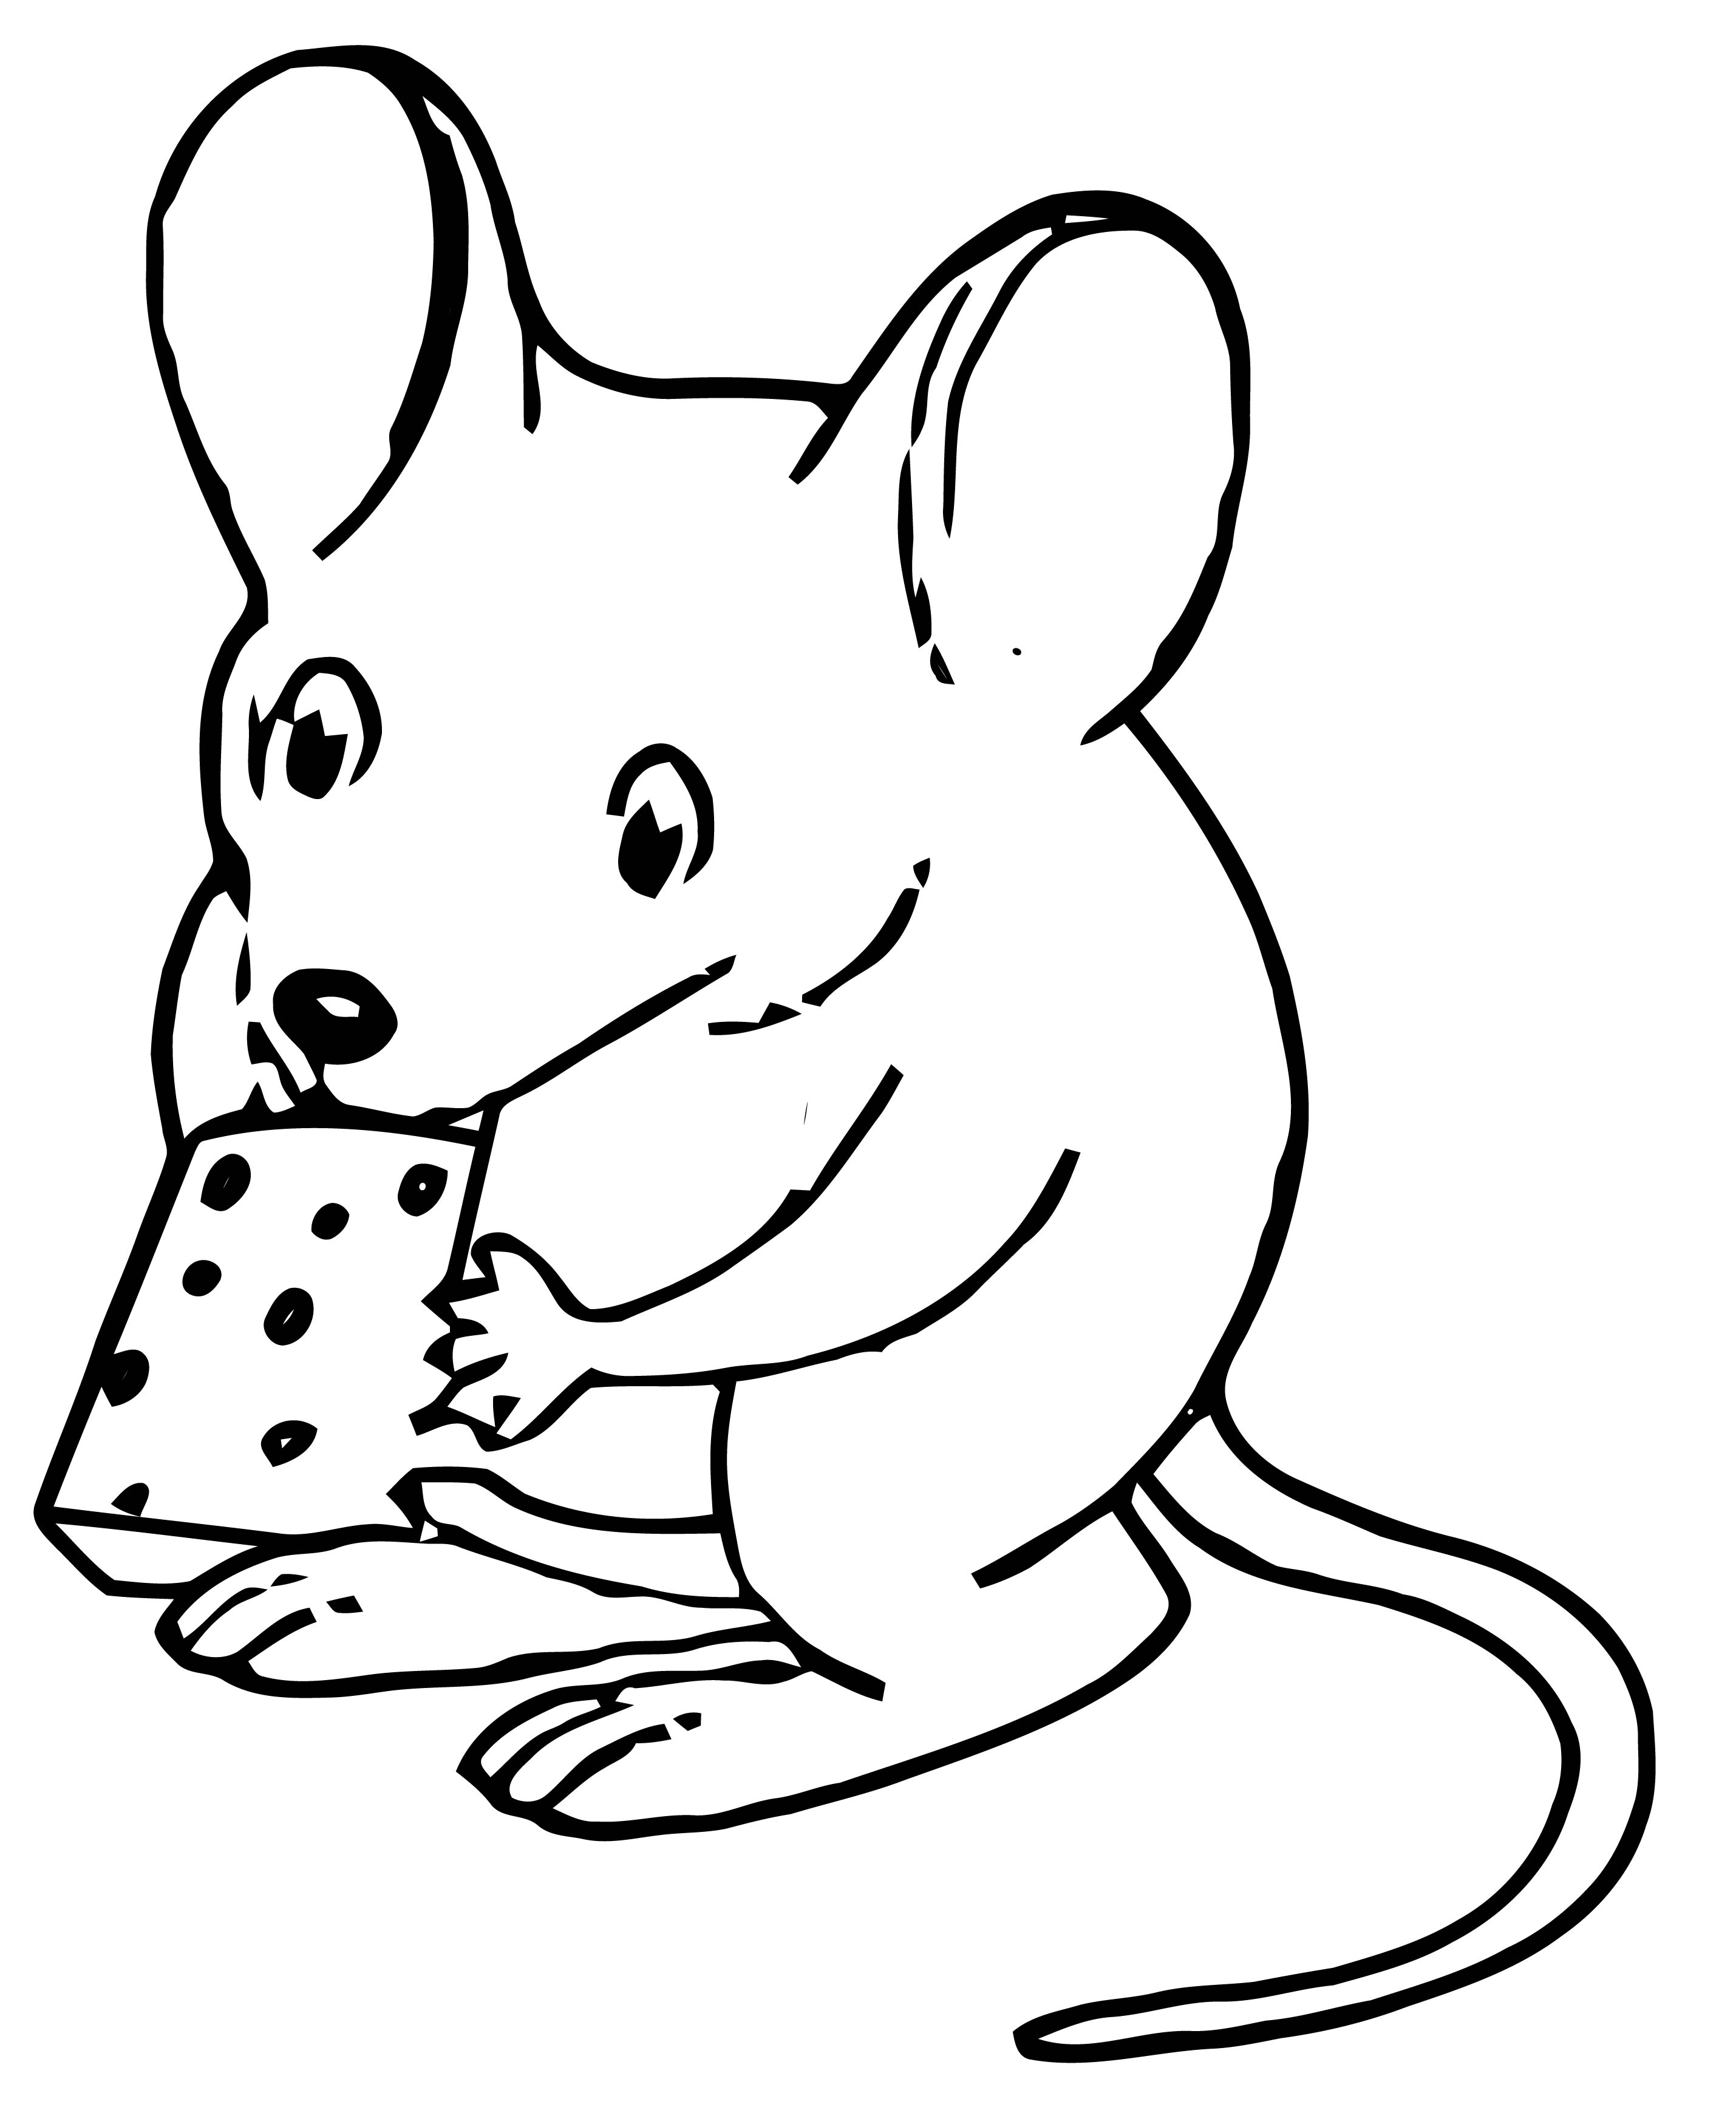 Mouse Holding Cheese Coloring Page